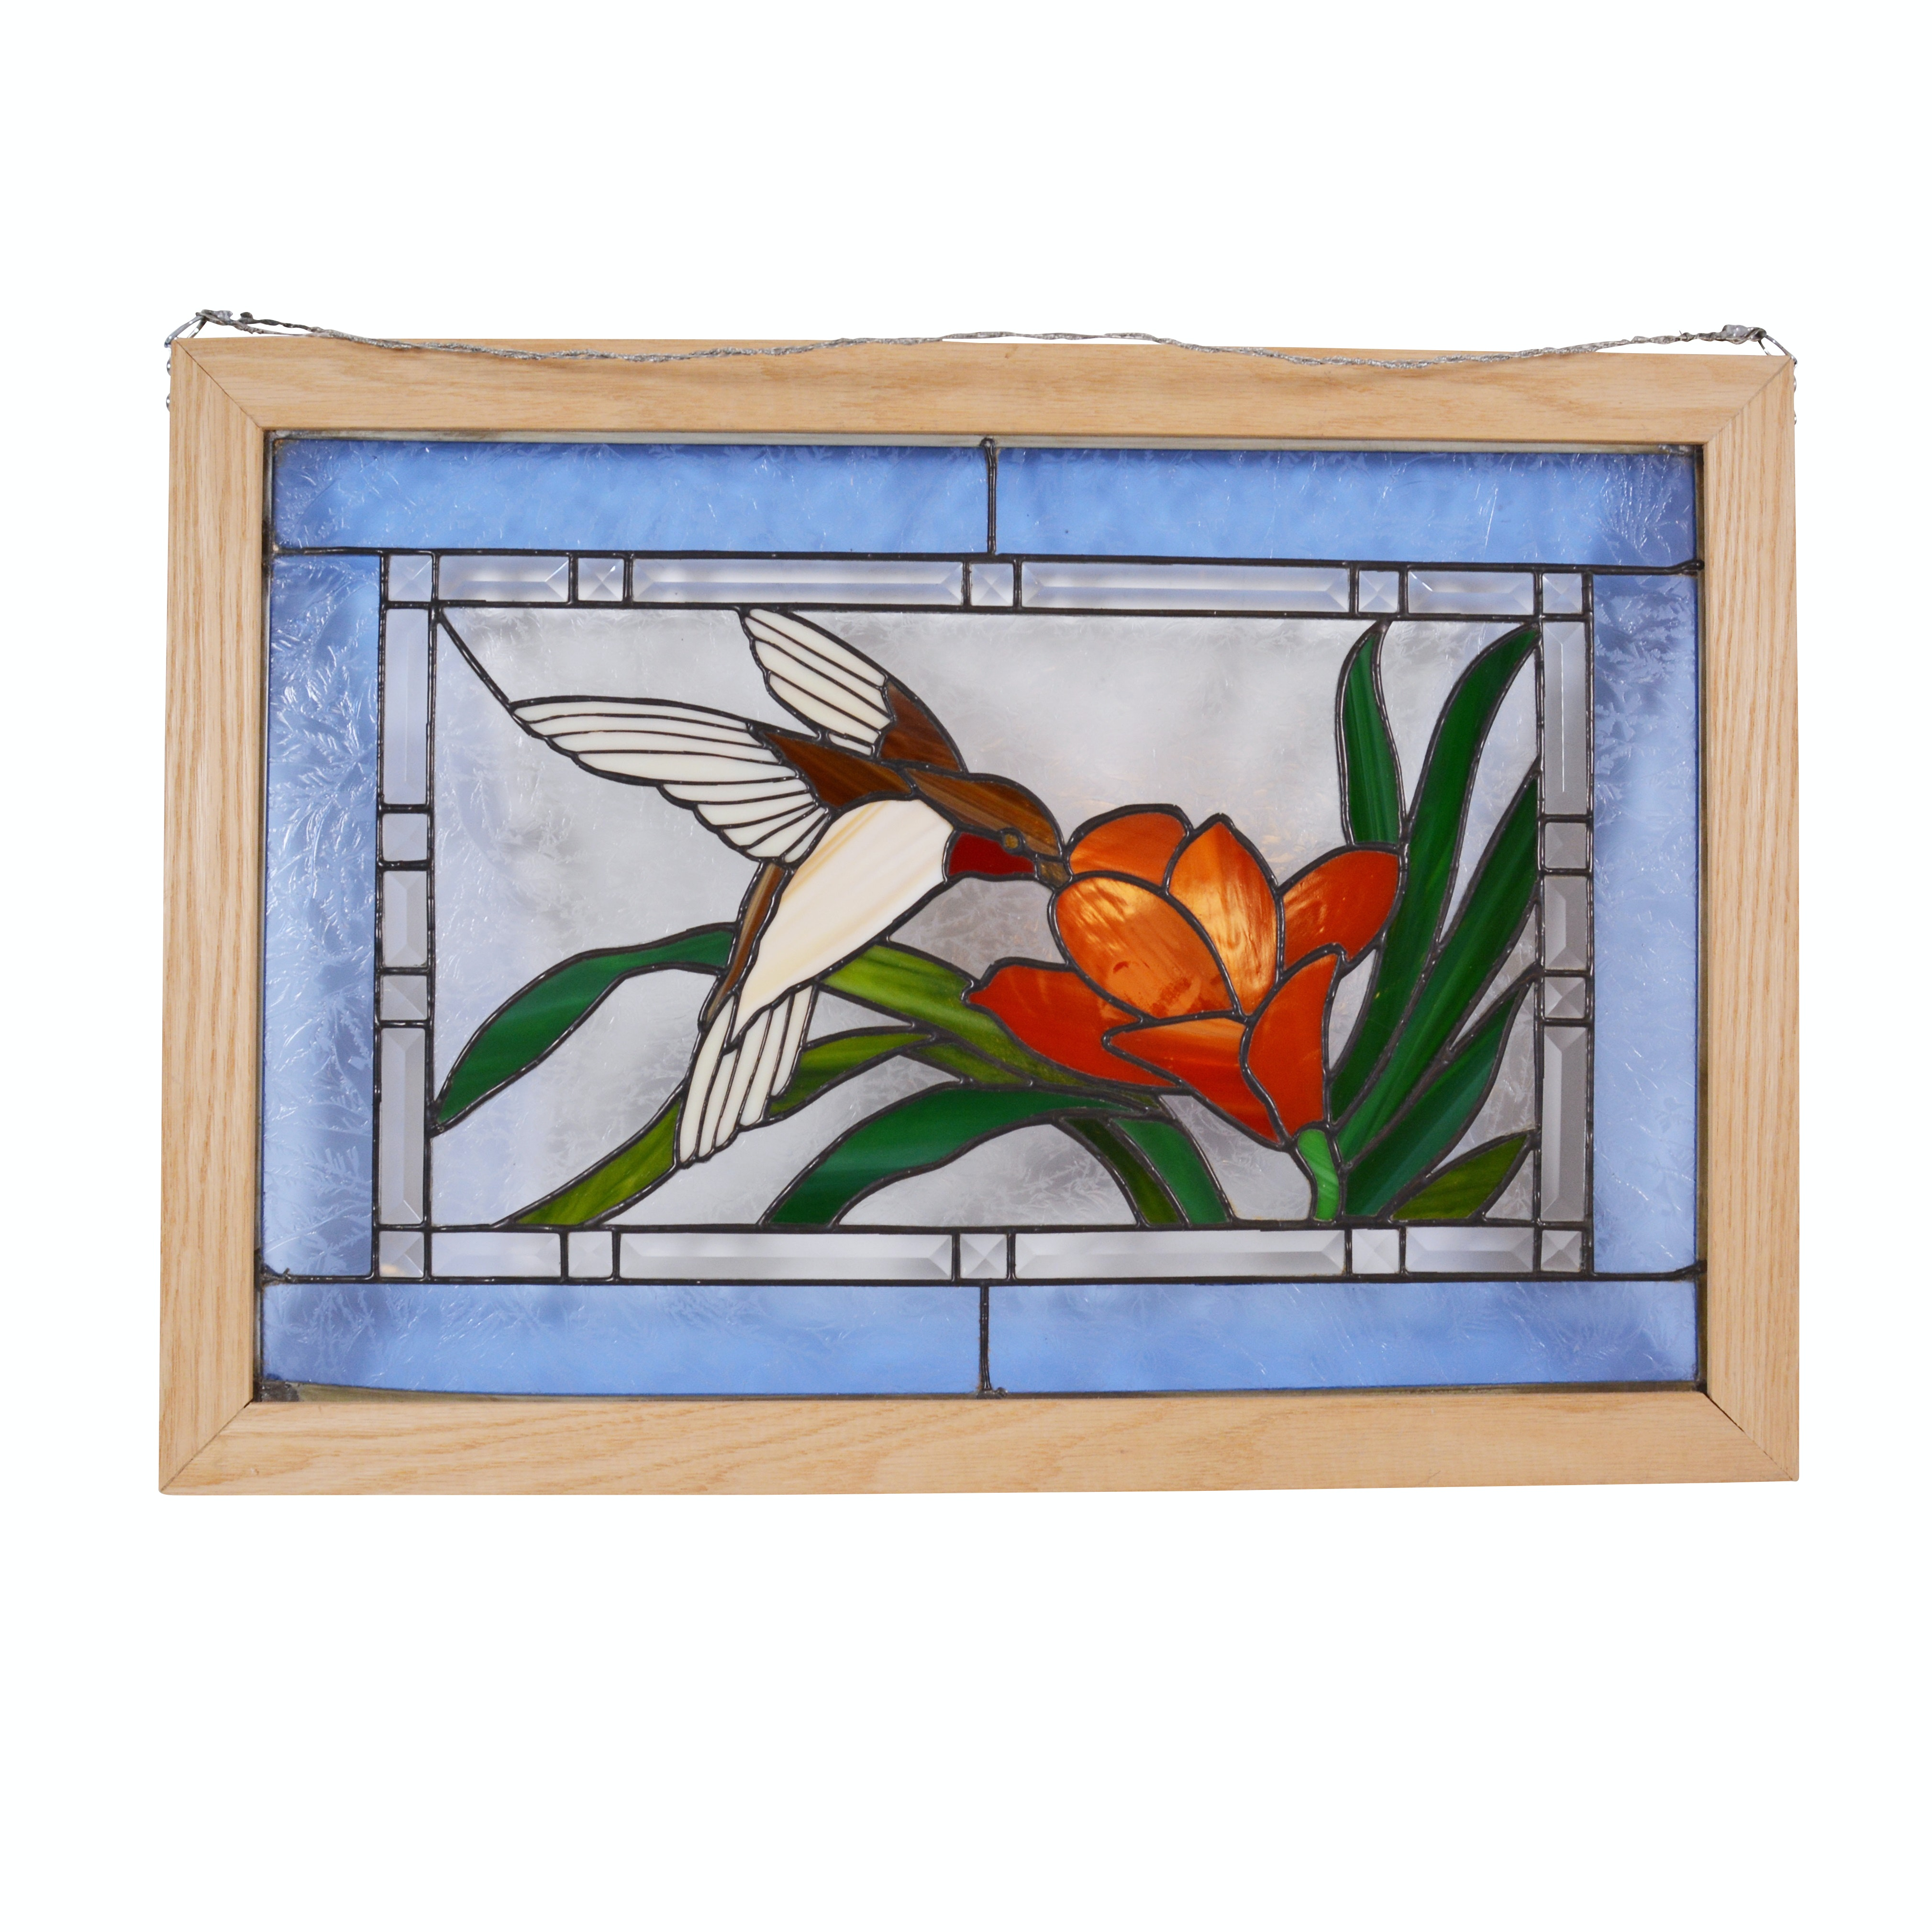 Stained Glass Hummingbird Hanging Window Panel